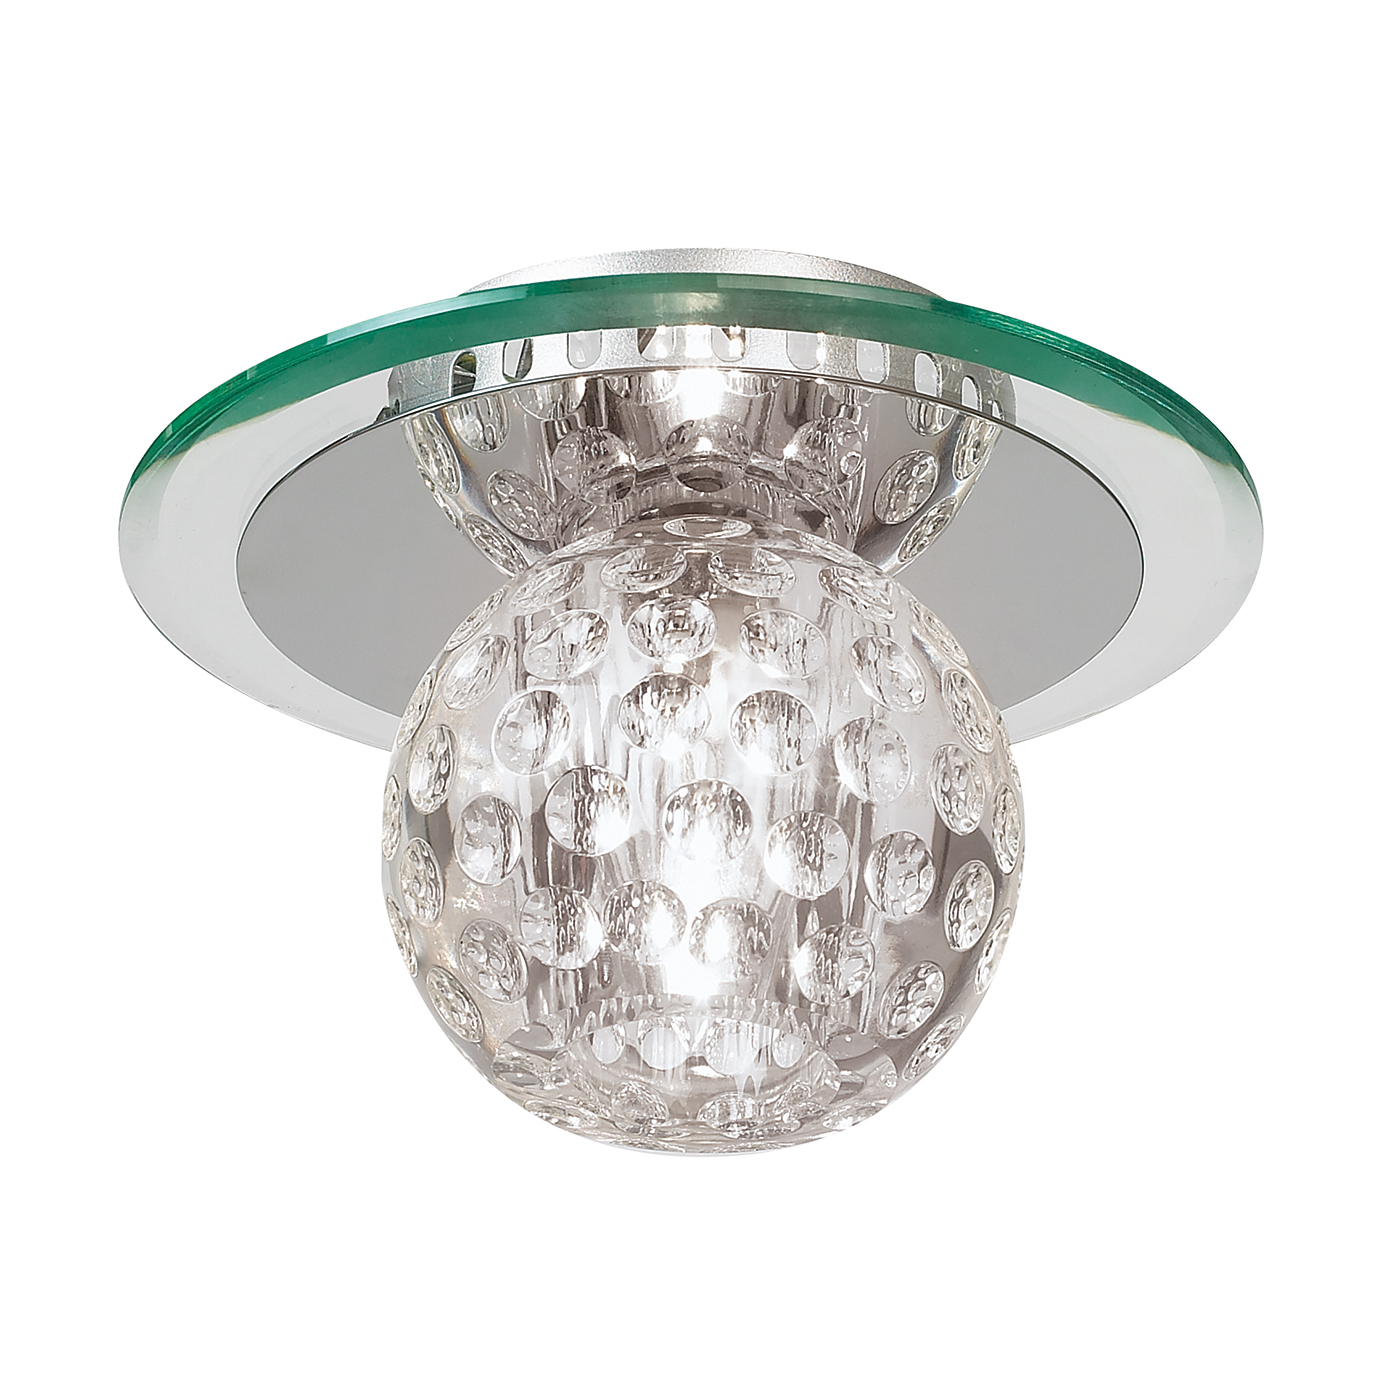 Endon 96471-CRY Ceiling Light c/w G9 40W